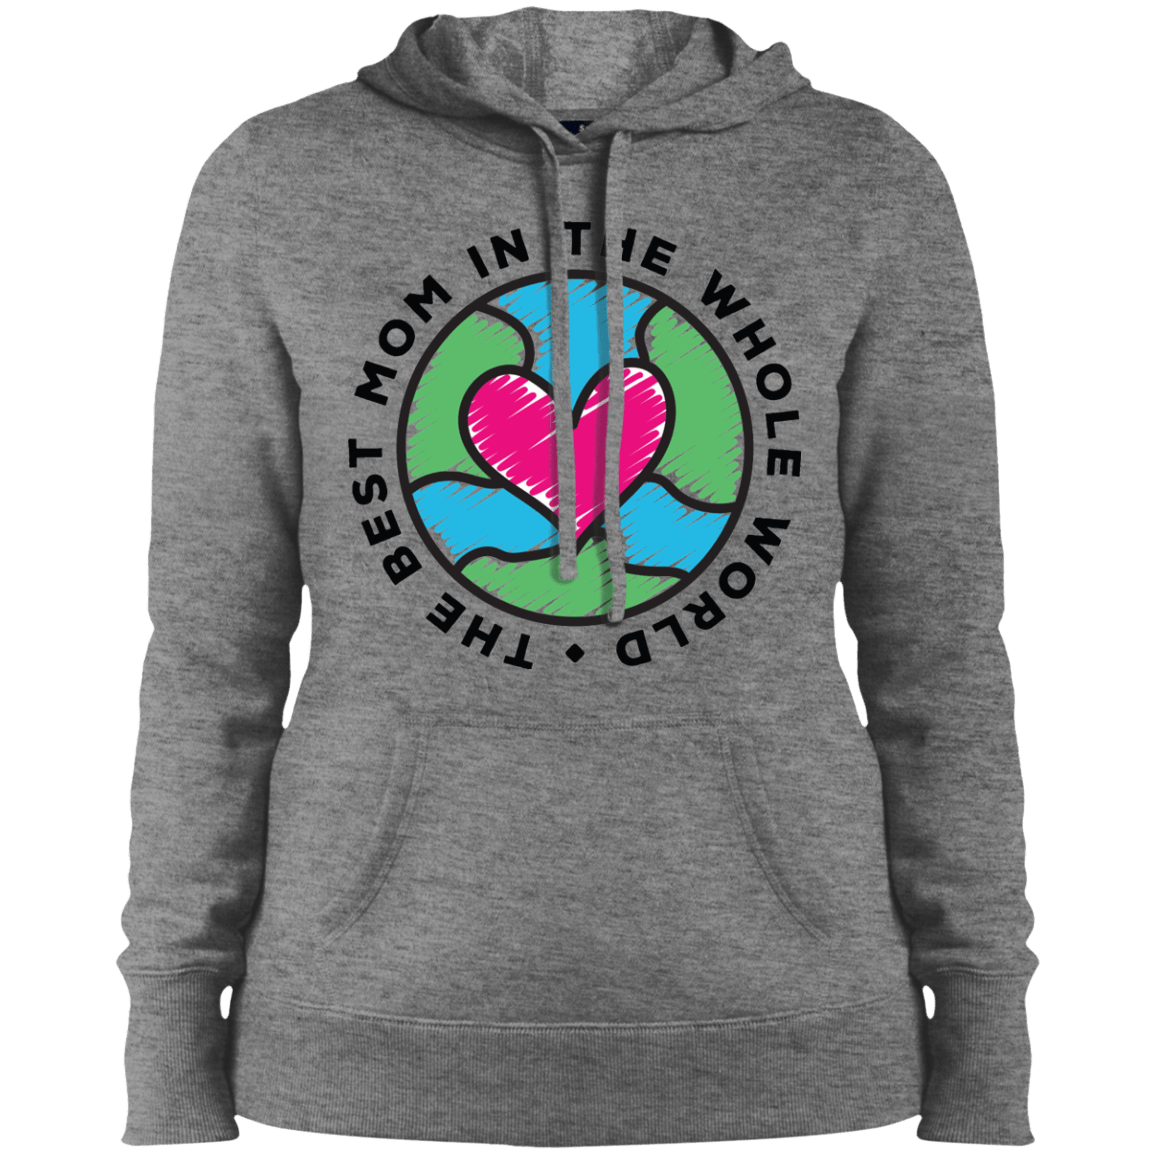 this image is used to give an example of print on demand mother's day hoodie